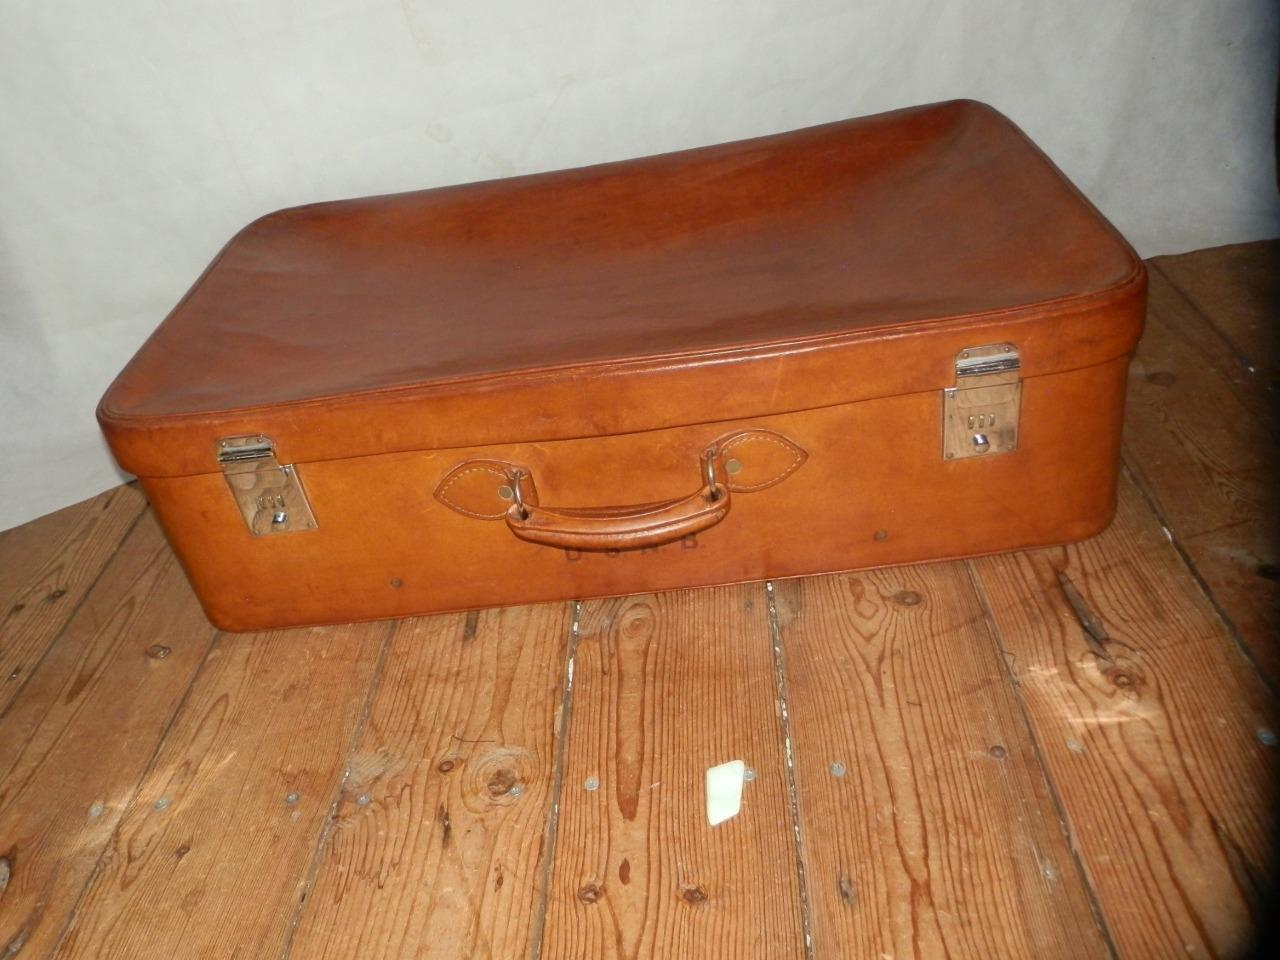 Vintage Soft Calf Hide English cuir voyage Suitcase. Made by  Harrods London